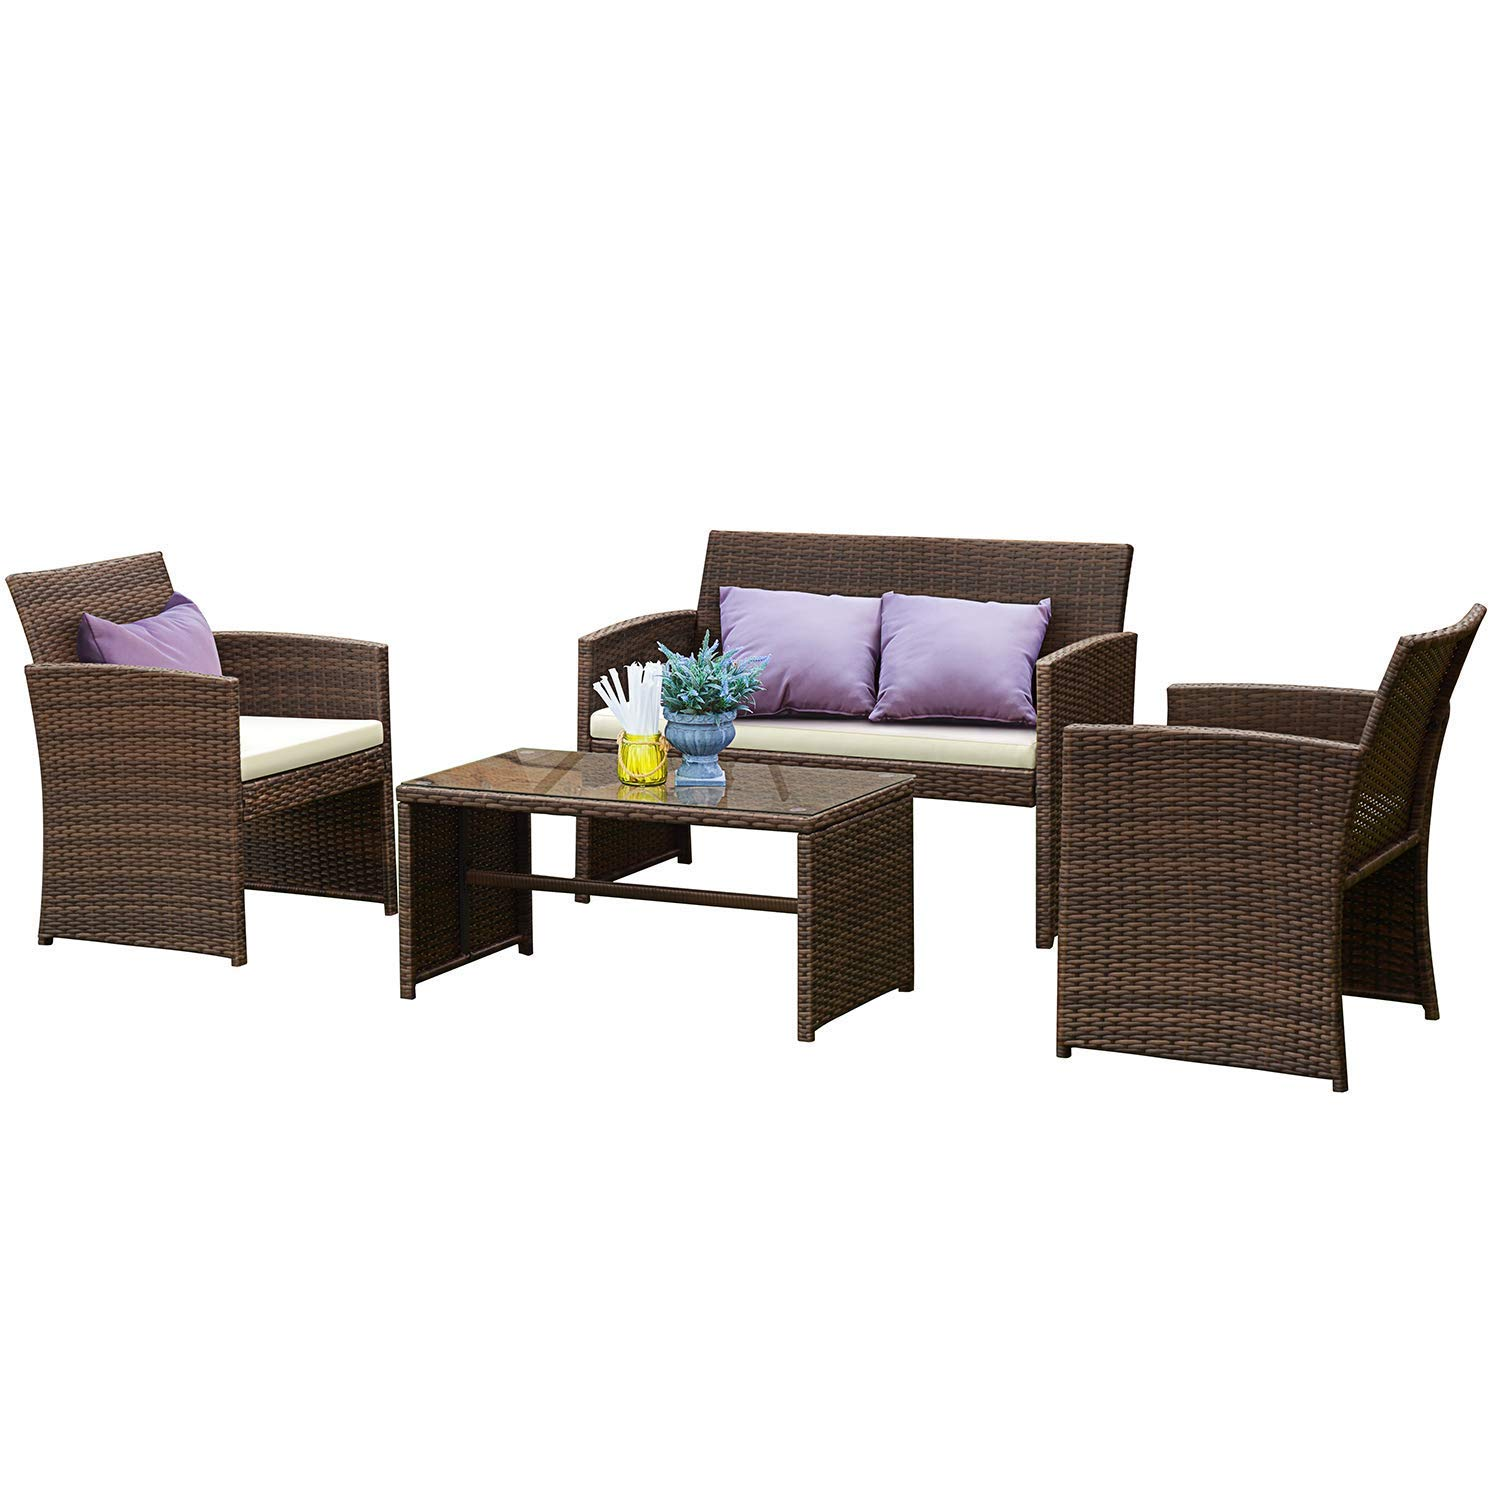 Tangkula Patio Furniture Set 4 Piece Outdoor Rattan Wicker Sofa Cushioned Seat Garden Lawn Poolside Sectional Conversation Set with Glass Top Coffee Table, Wicker Furniture